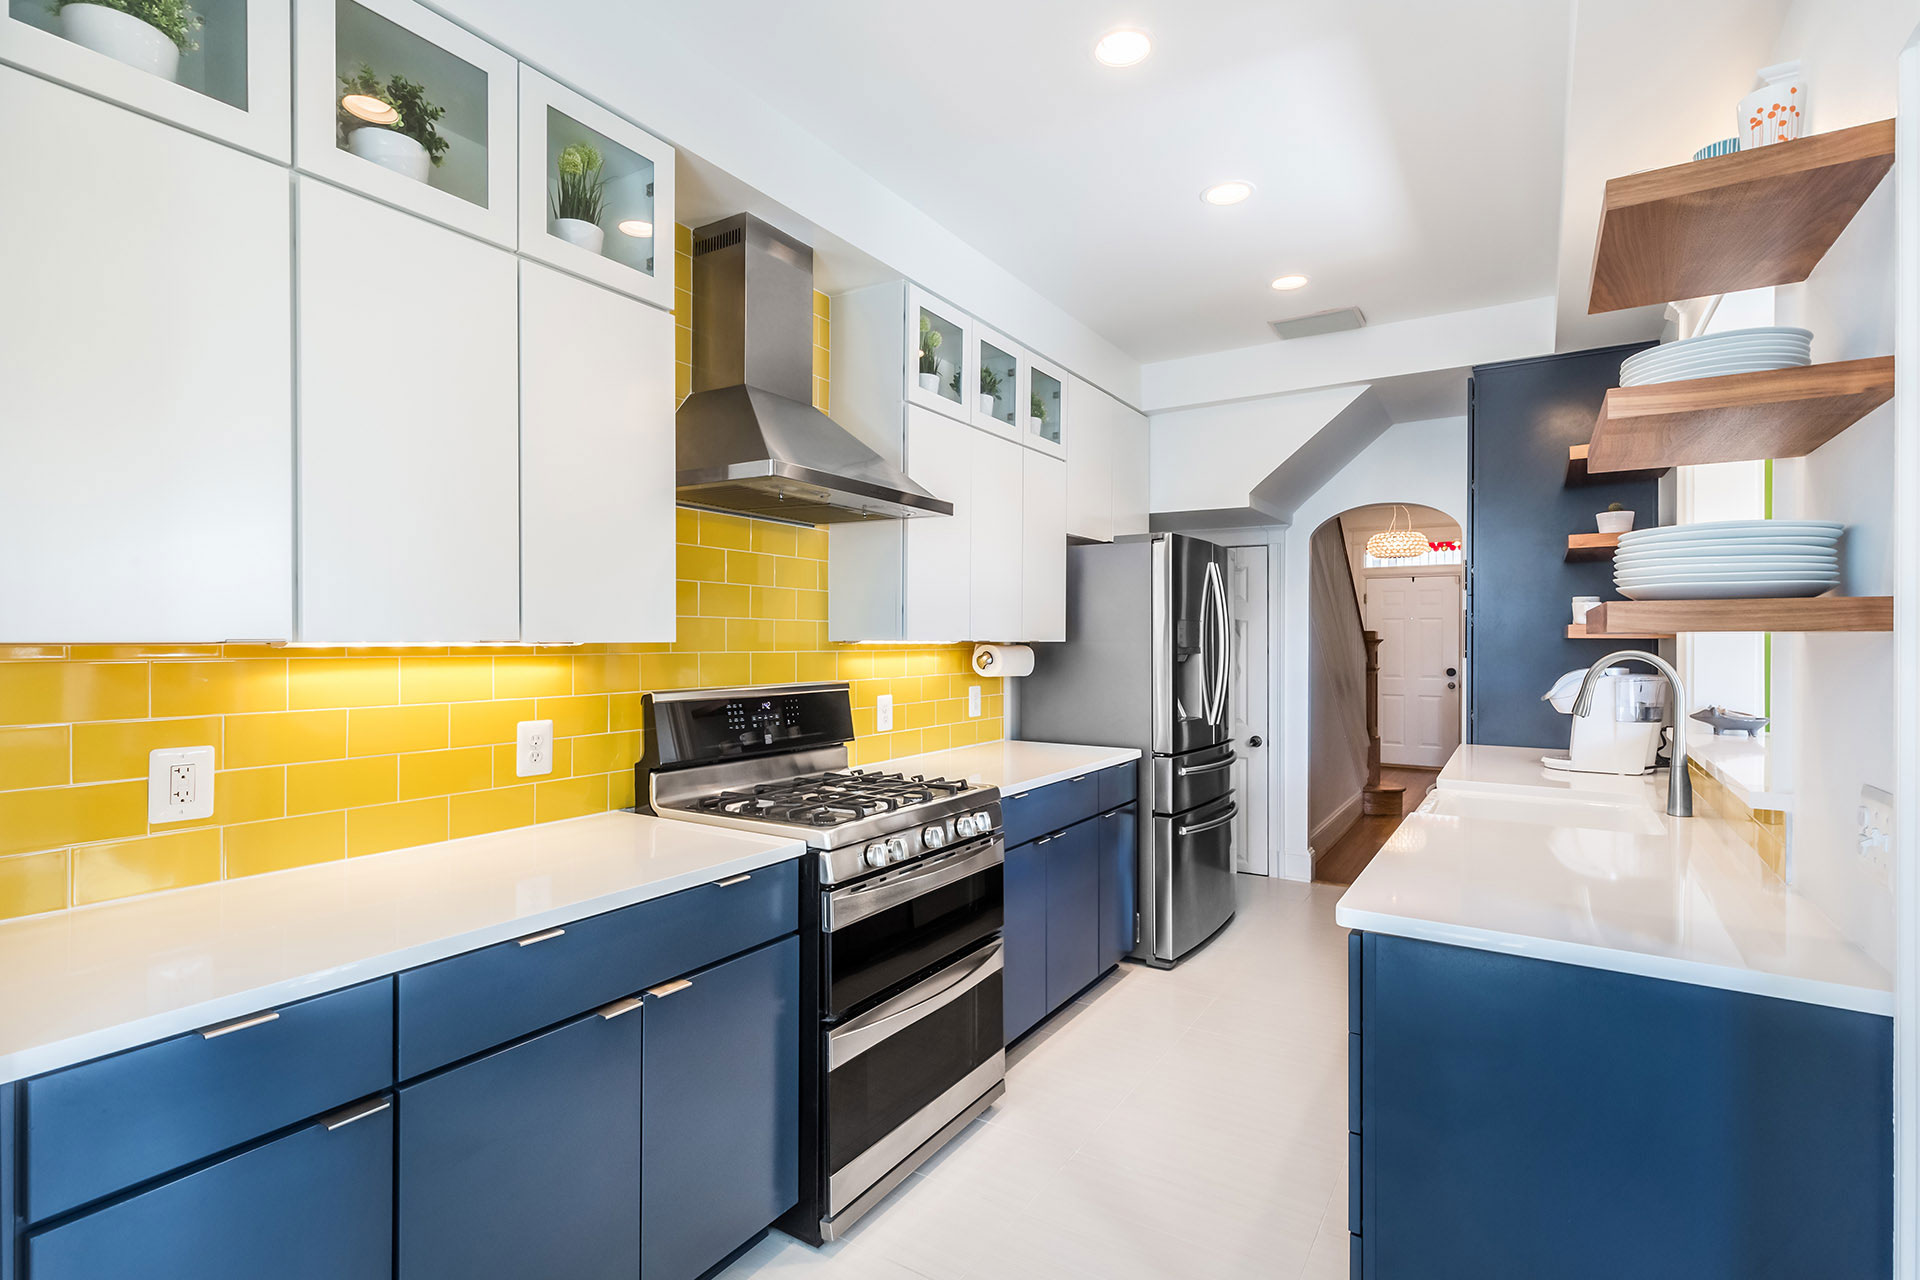 Kitchen blue and yellow - Home